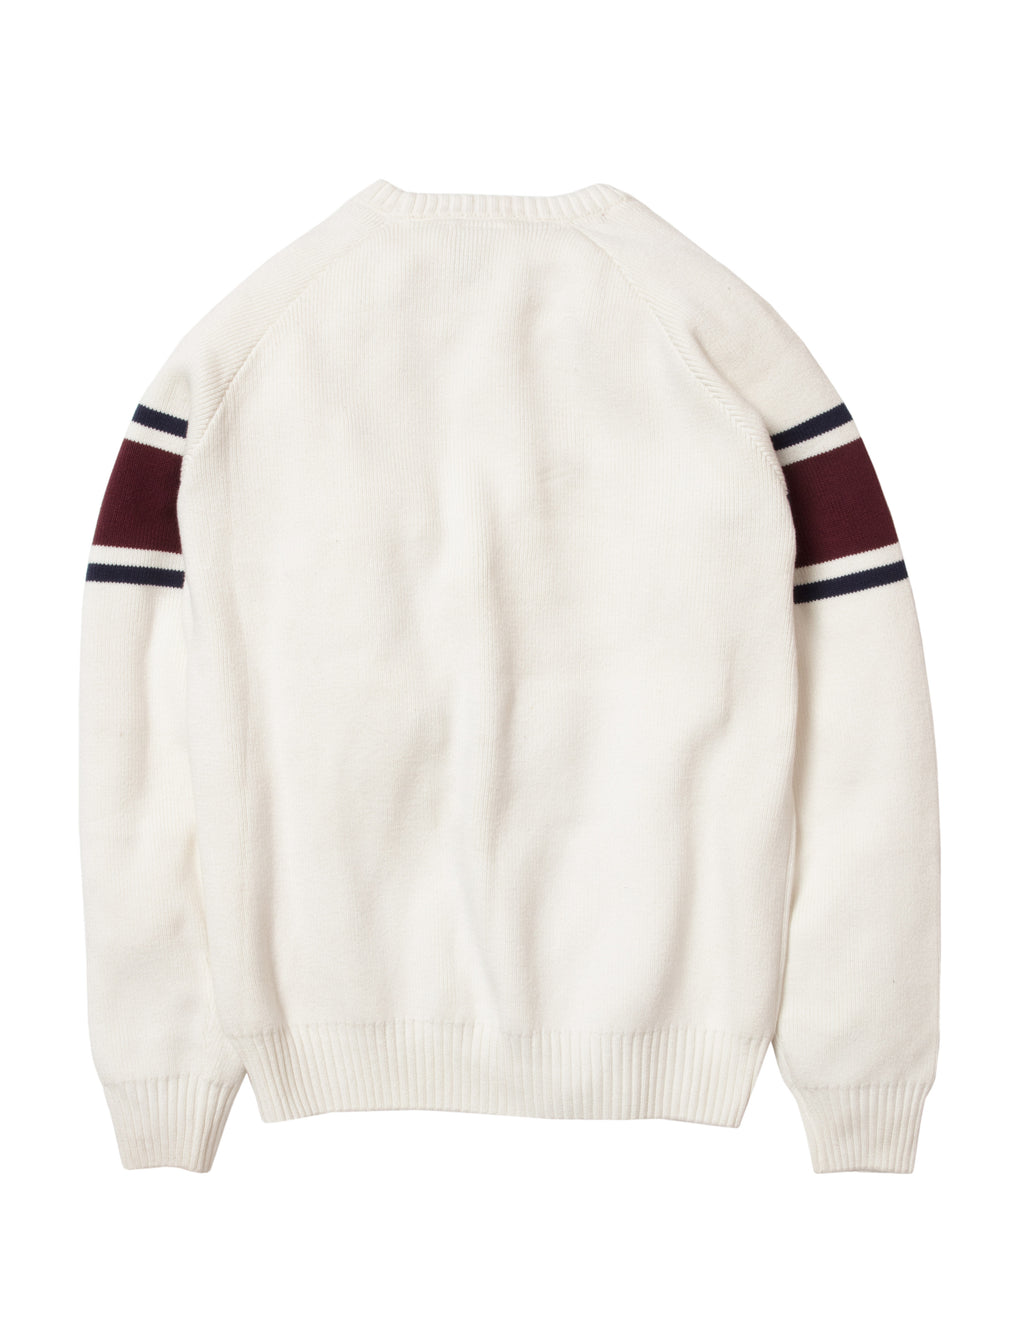 Big & Tall - Tradition Crew Neck Sweater